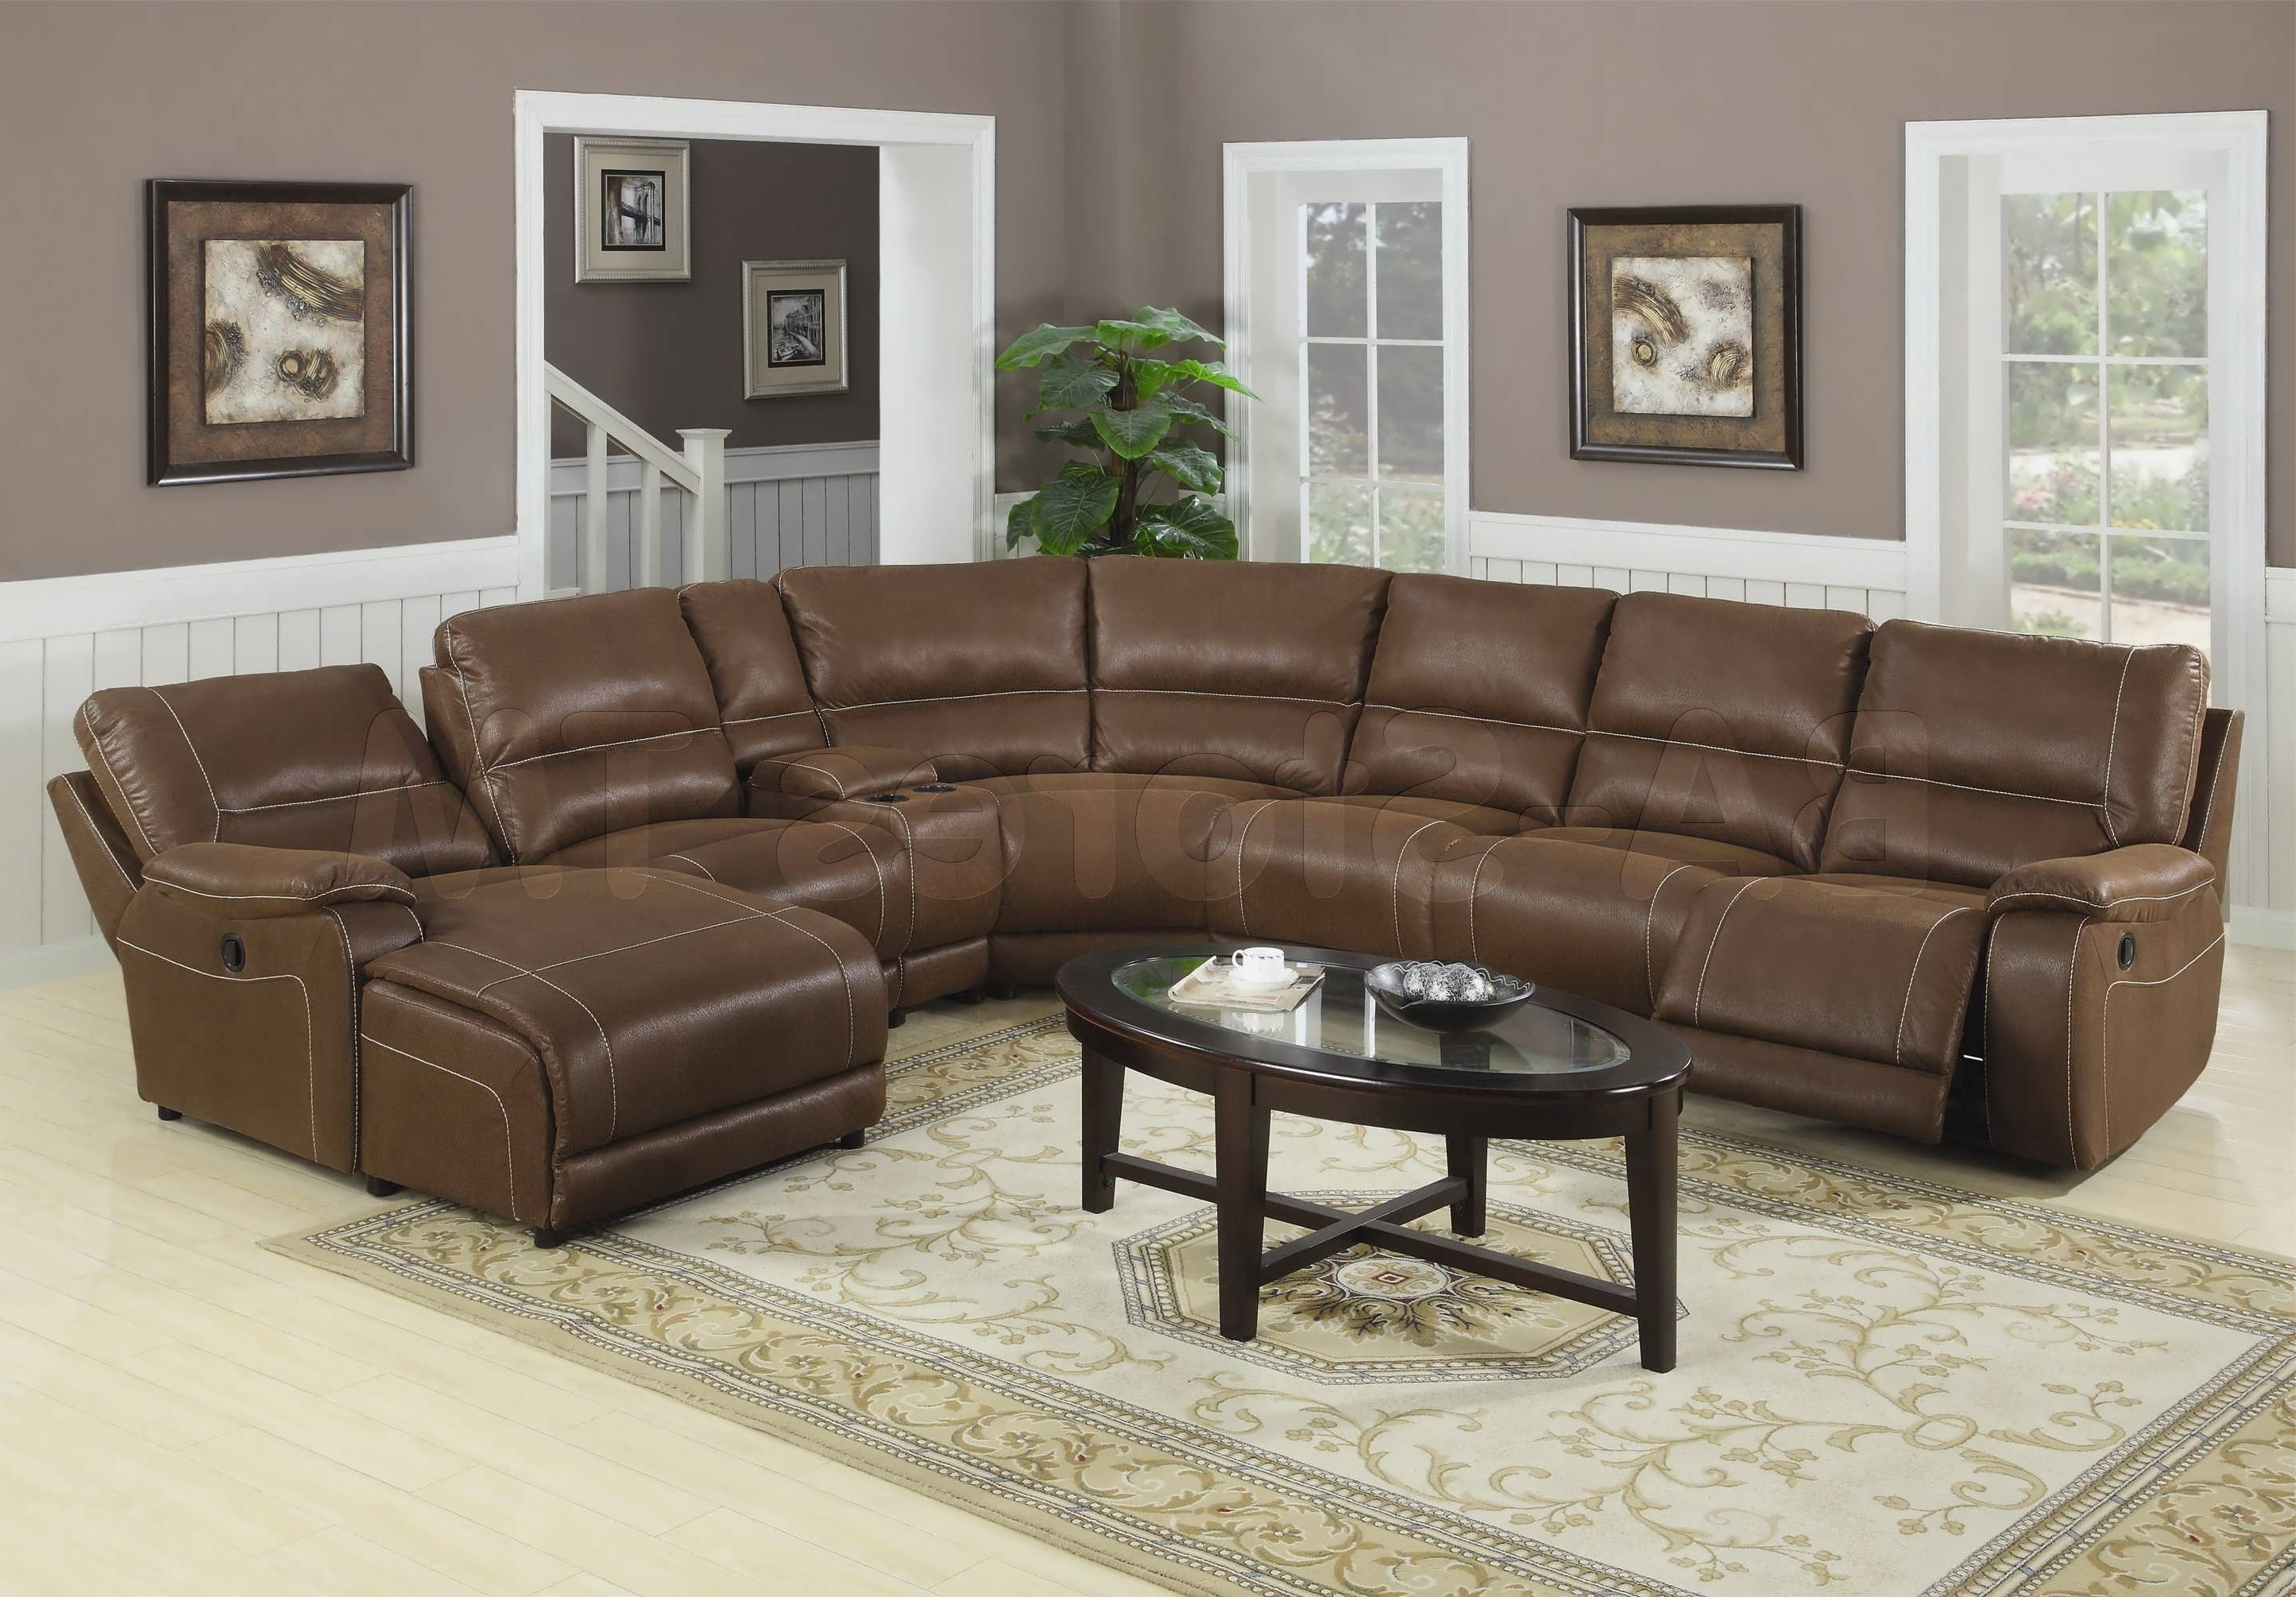 2018 Sofa : Sectional Sofas With Recliners Reclining Sectional With Inside Chaise Recliners (View 8 of 15)